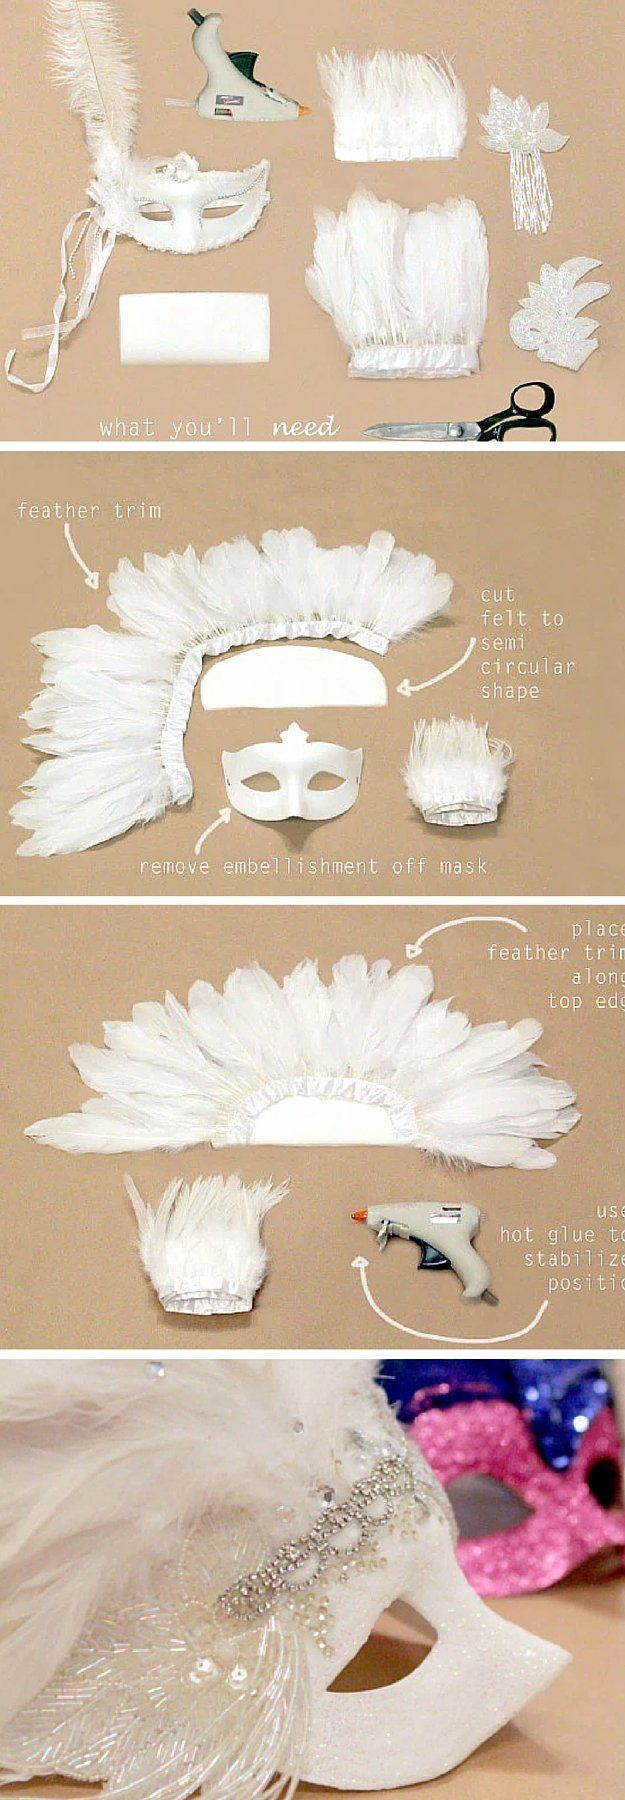 Carnival Mardi Gras Mask  Learn How To Make A Festive Mask With These 7  Easy